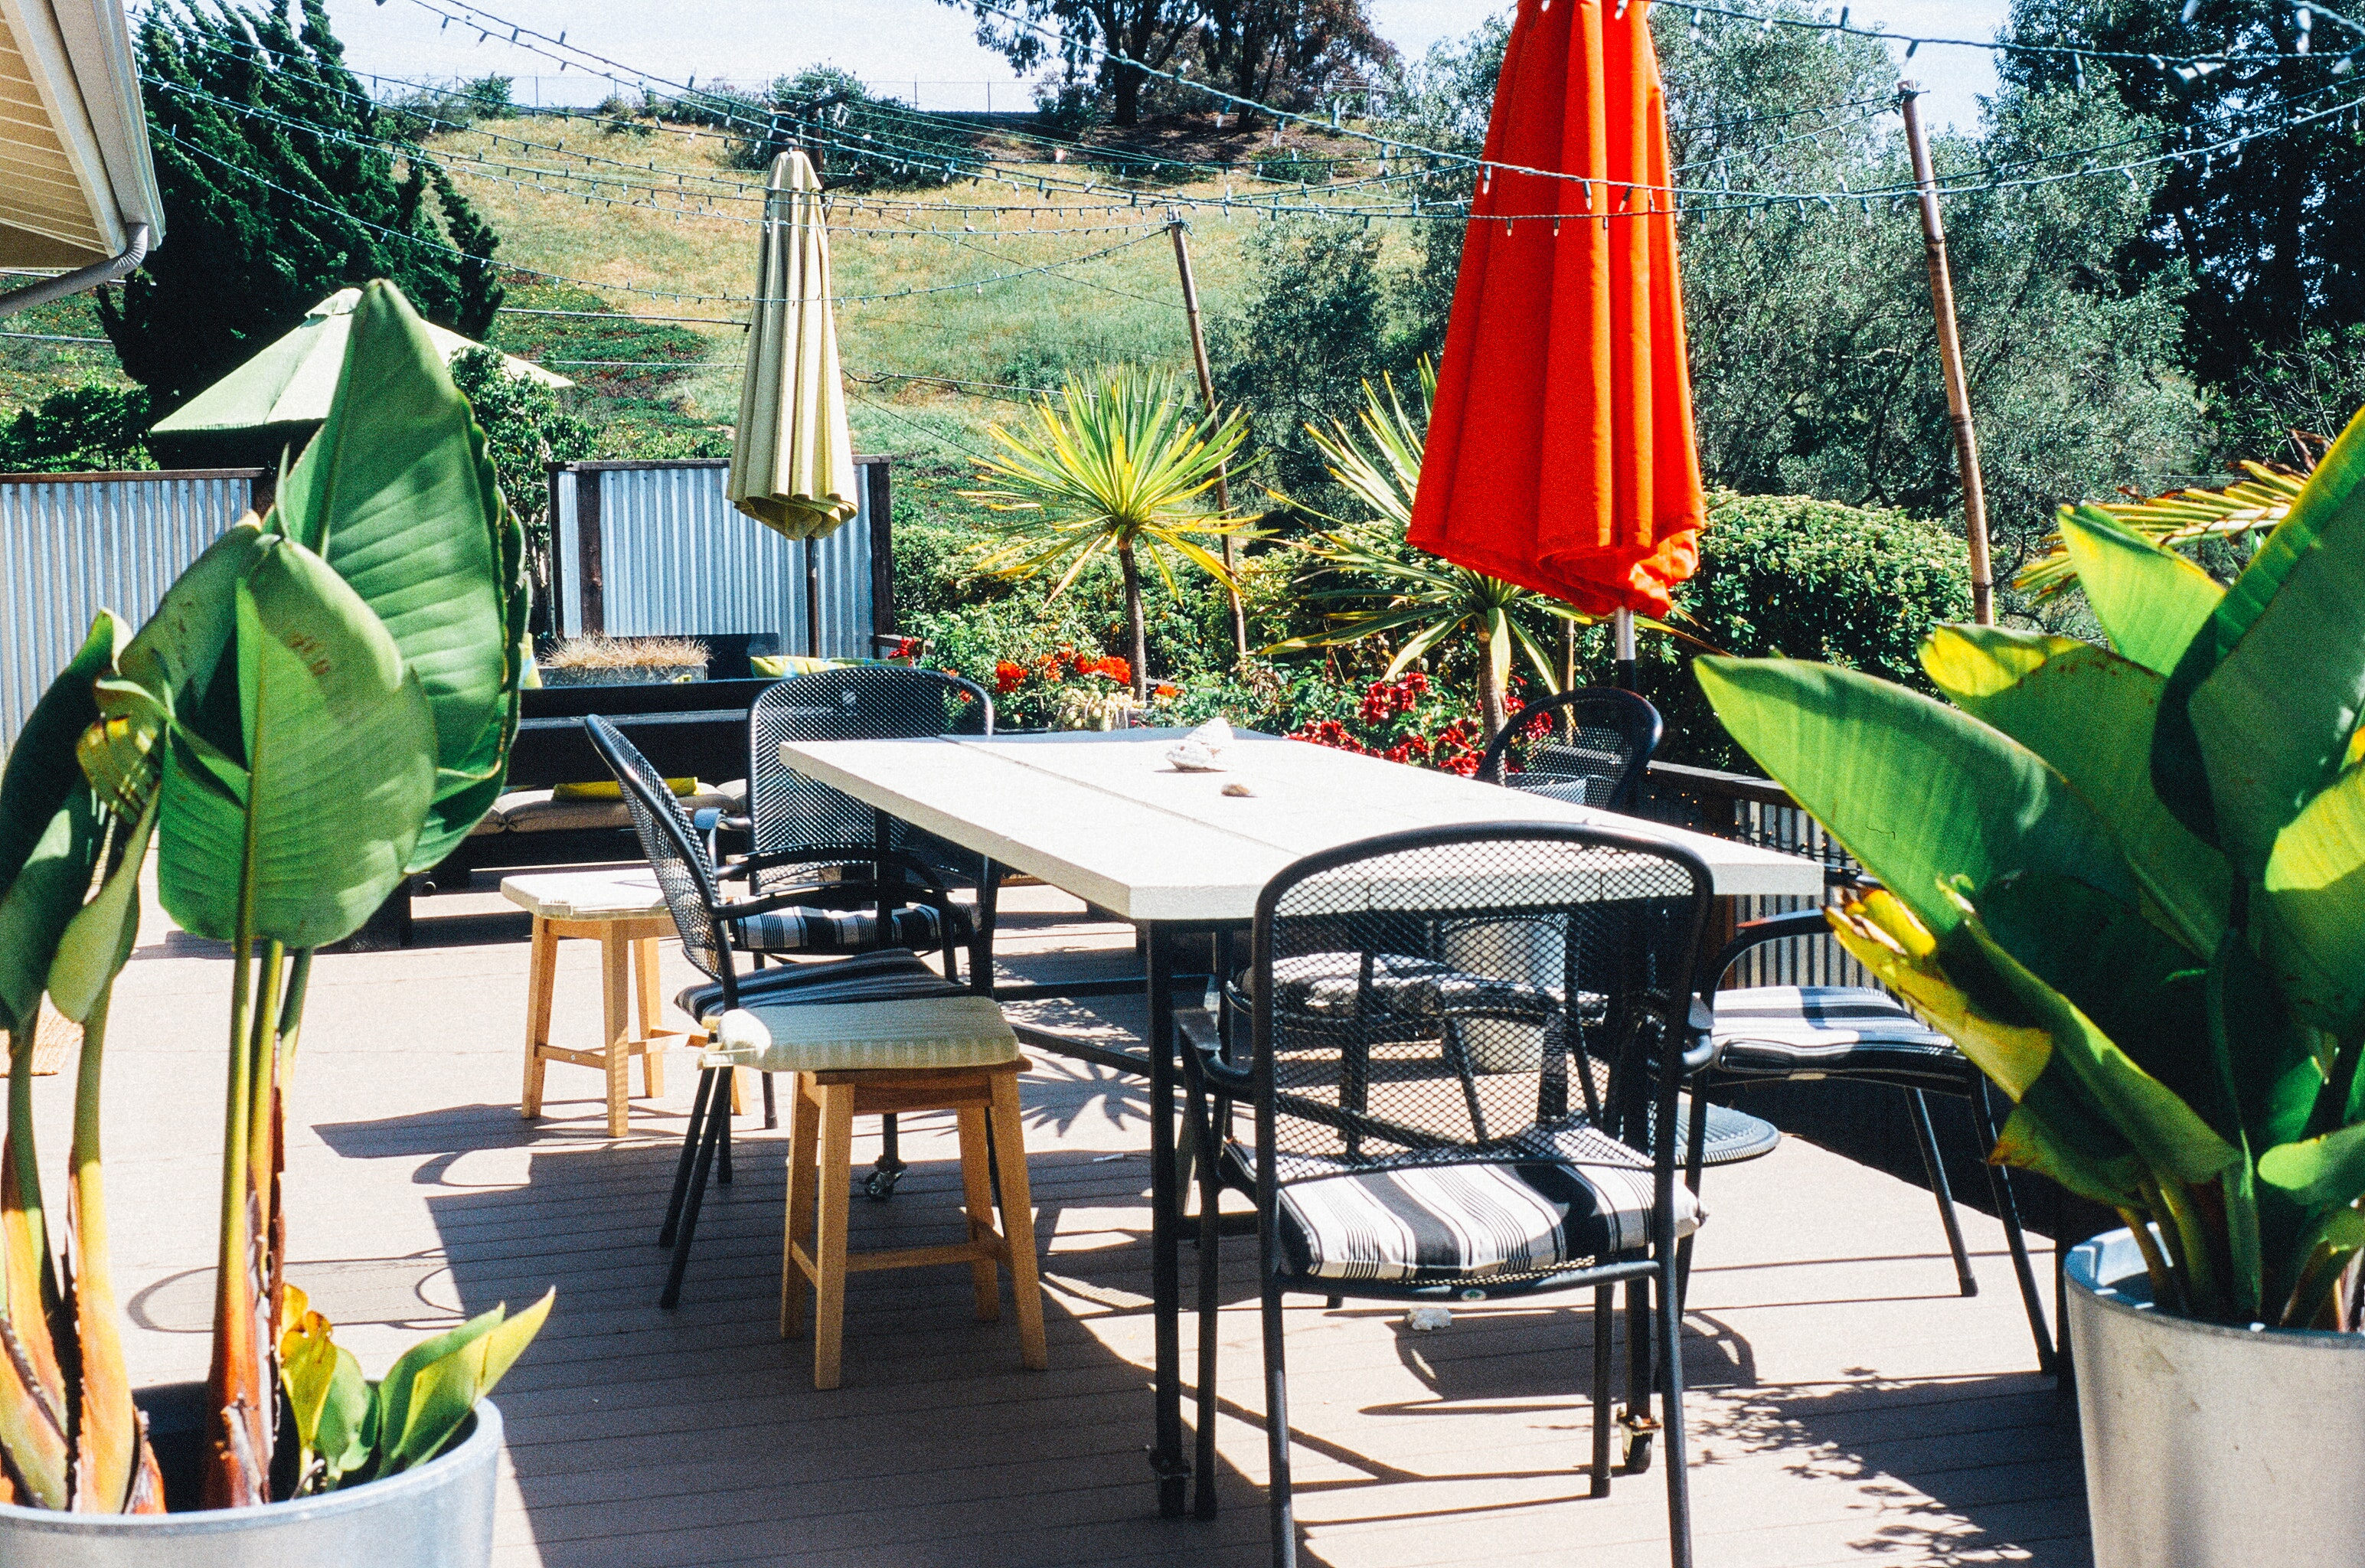 Make the Most of Your Outdoor Living Space